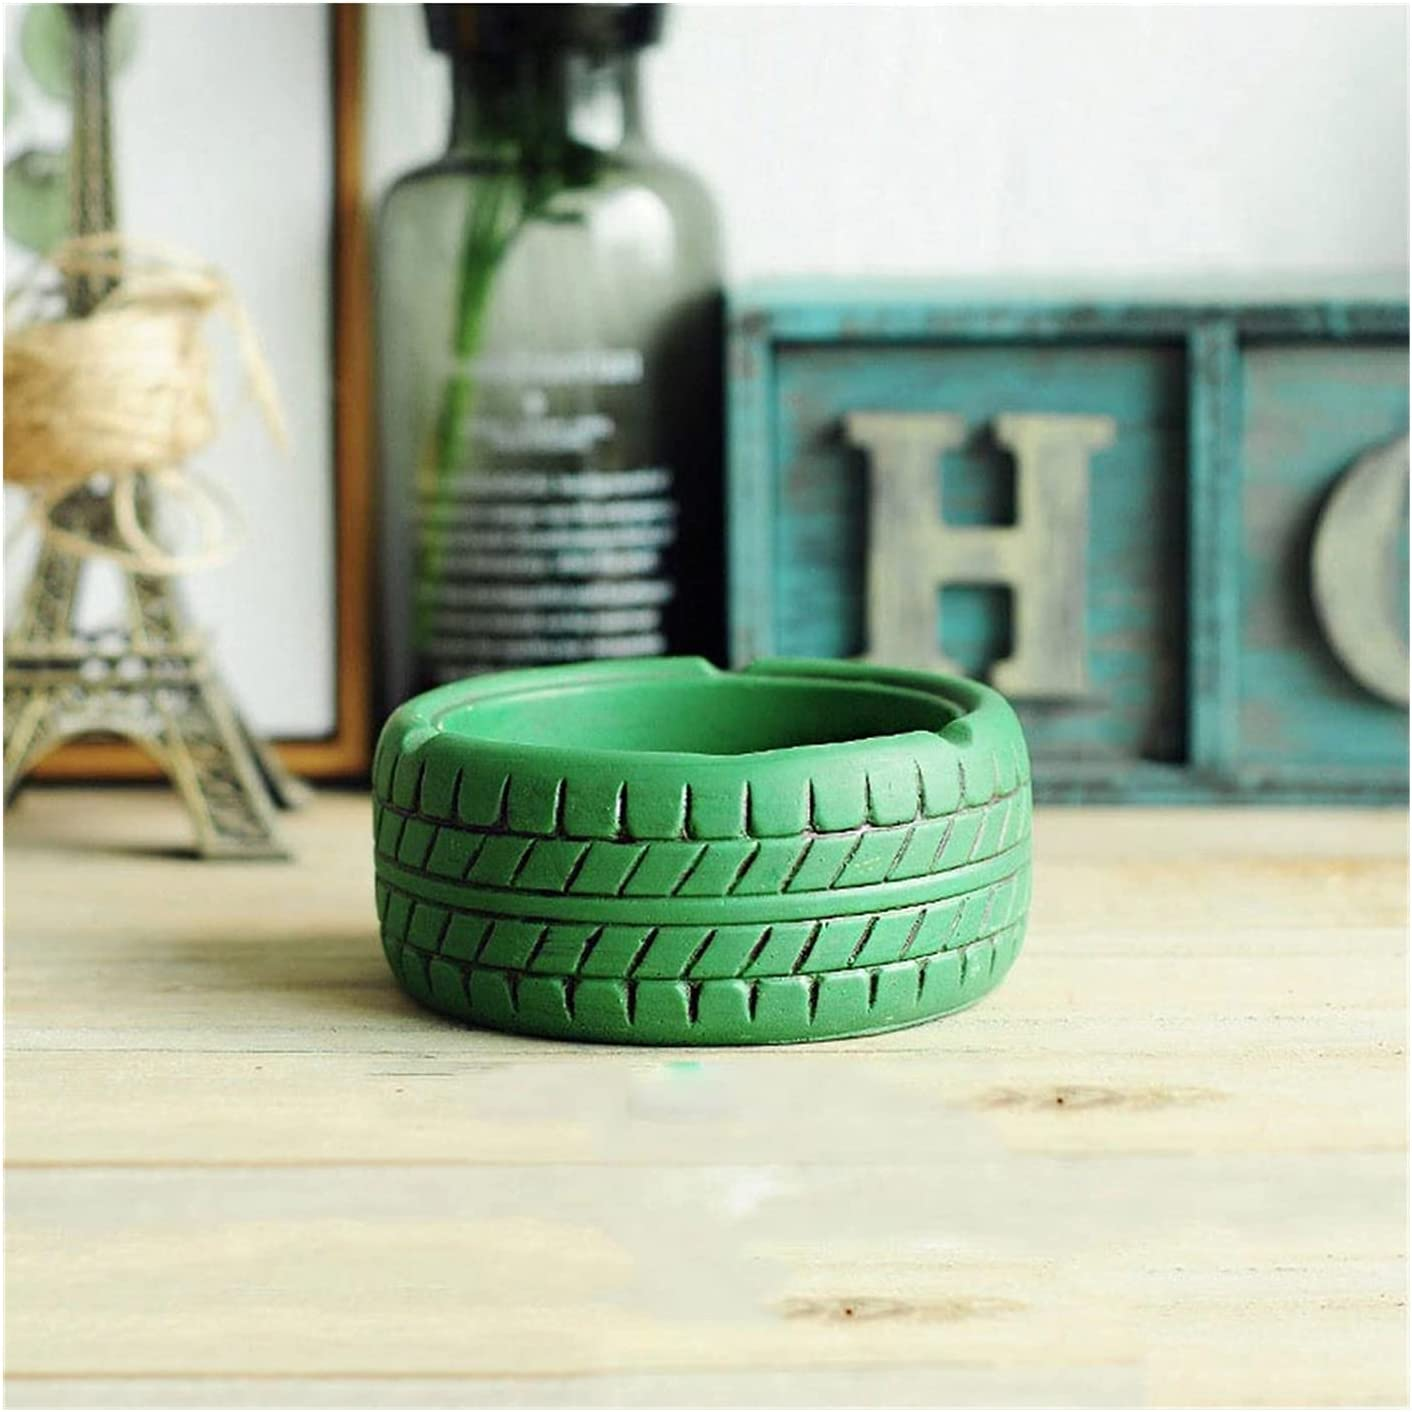 SHIJIE1701AA Home Ashtray Industrial Living Retro Ranking TOP8 New color Cement